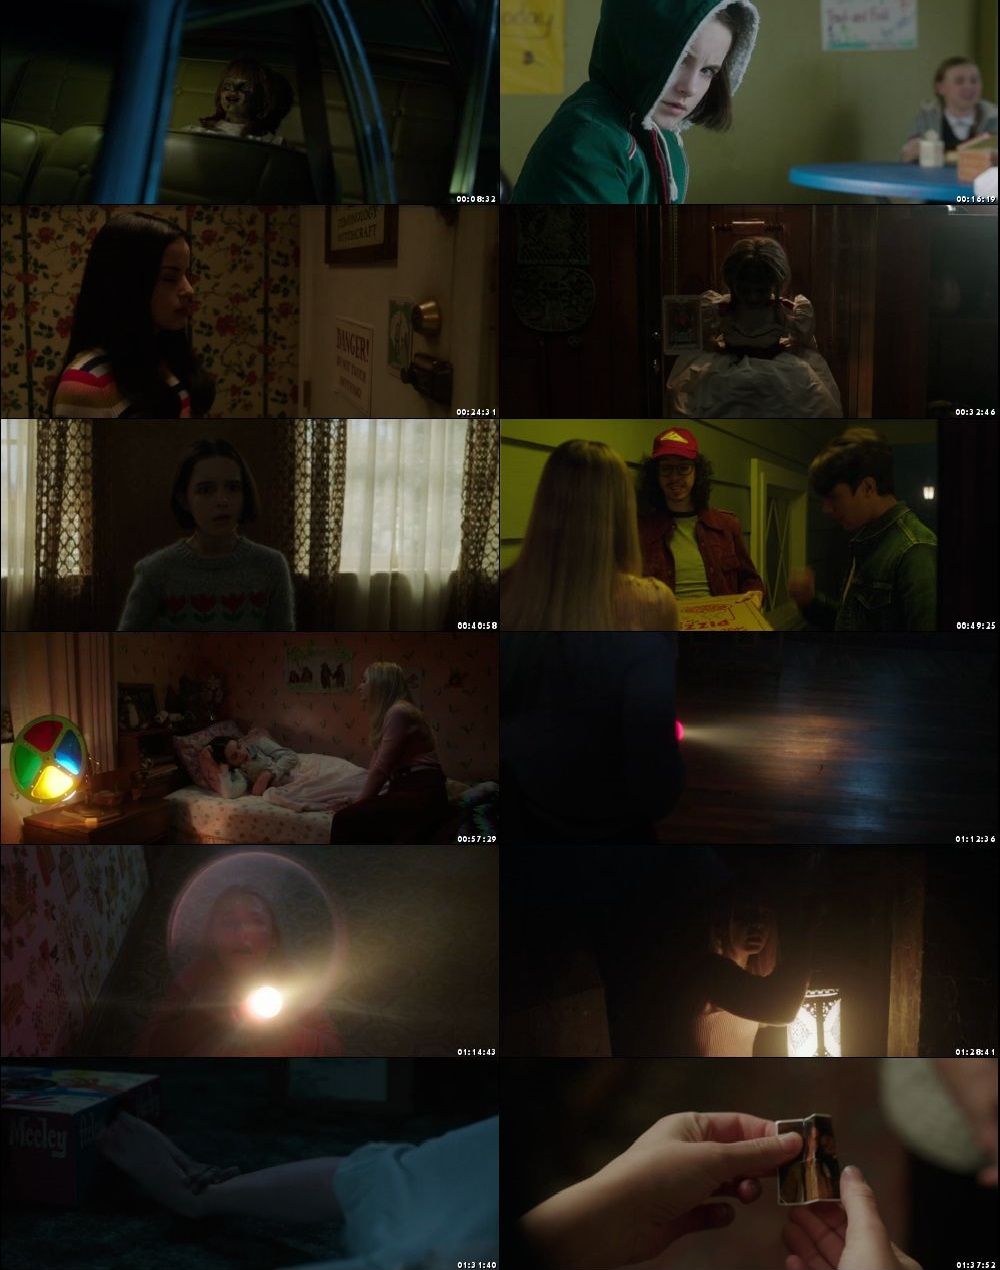 Annabelle%2BComes%2BHome%2Bhdr Annabelle Comes Home 2019 300MB HD Movie In Hindi Dubbed 720P